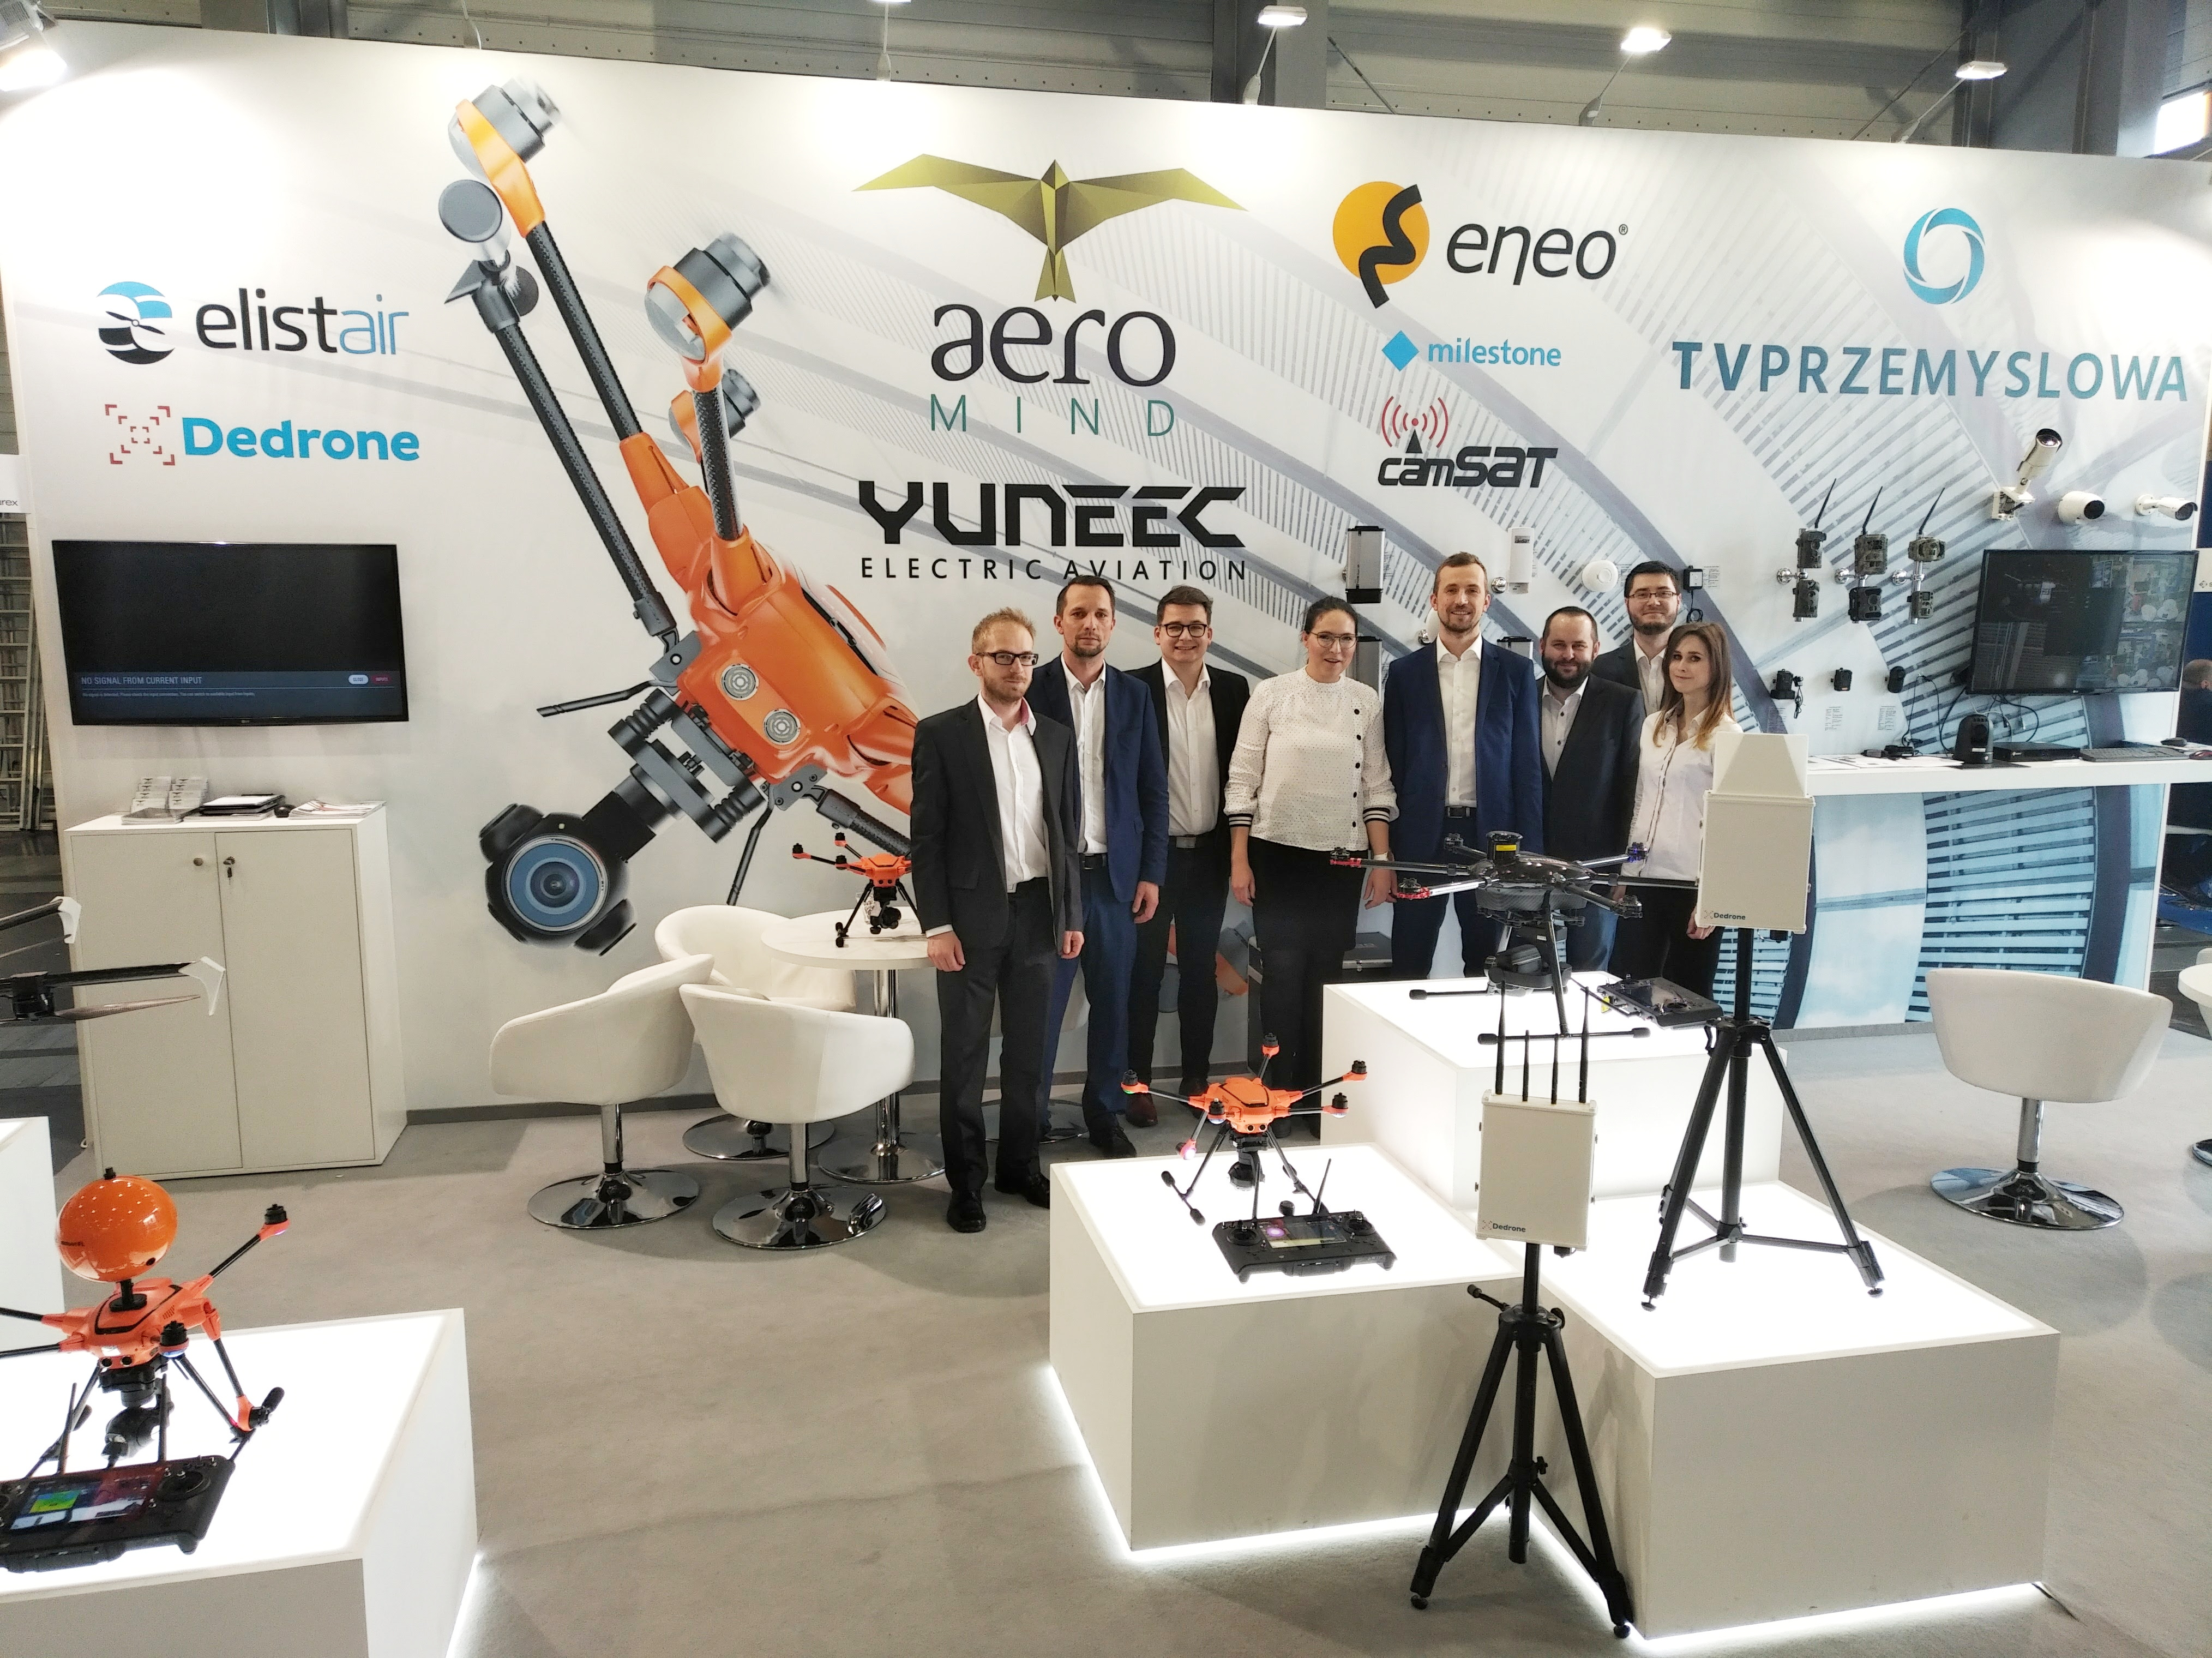 securex_2018_dronezone_aeroMind_1